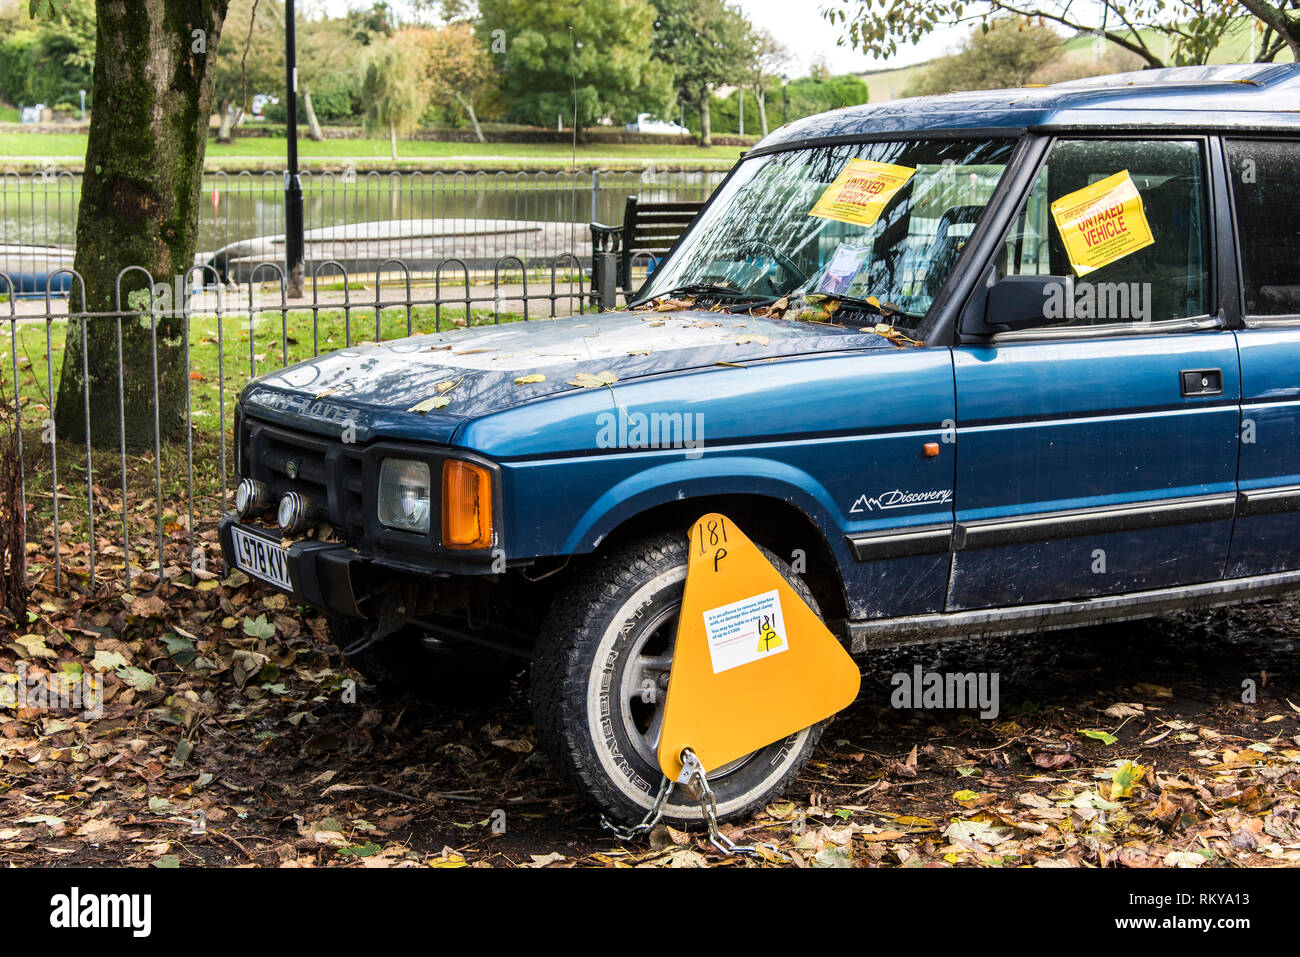 An untaxed Land Rover Discovery 4x4 vehicle clamped and ticketed. Stock Photo